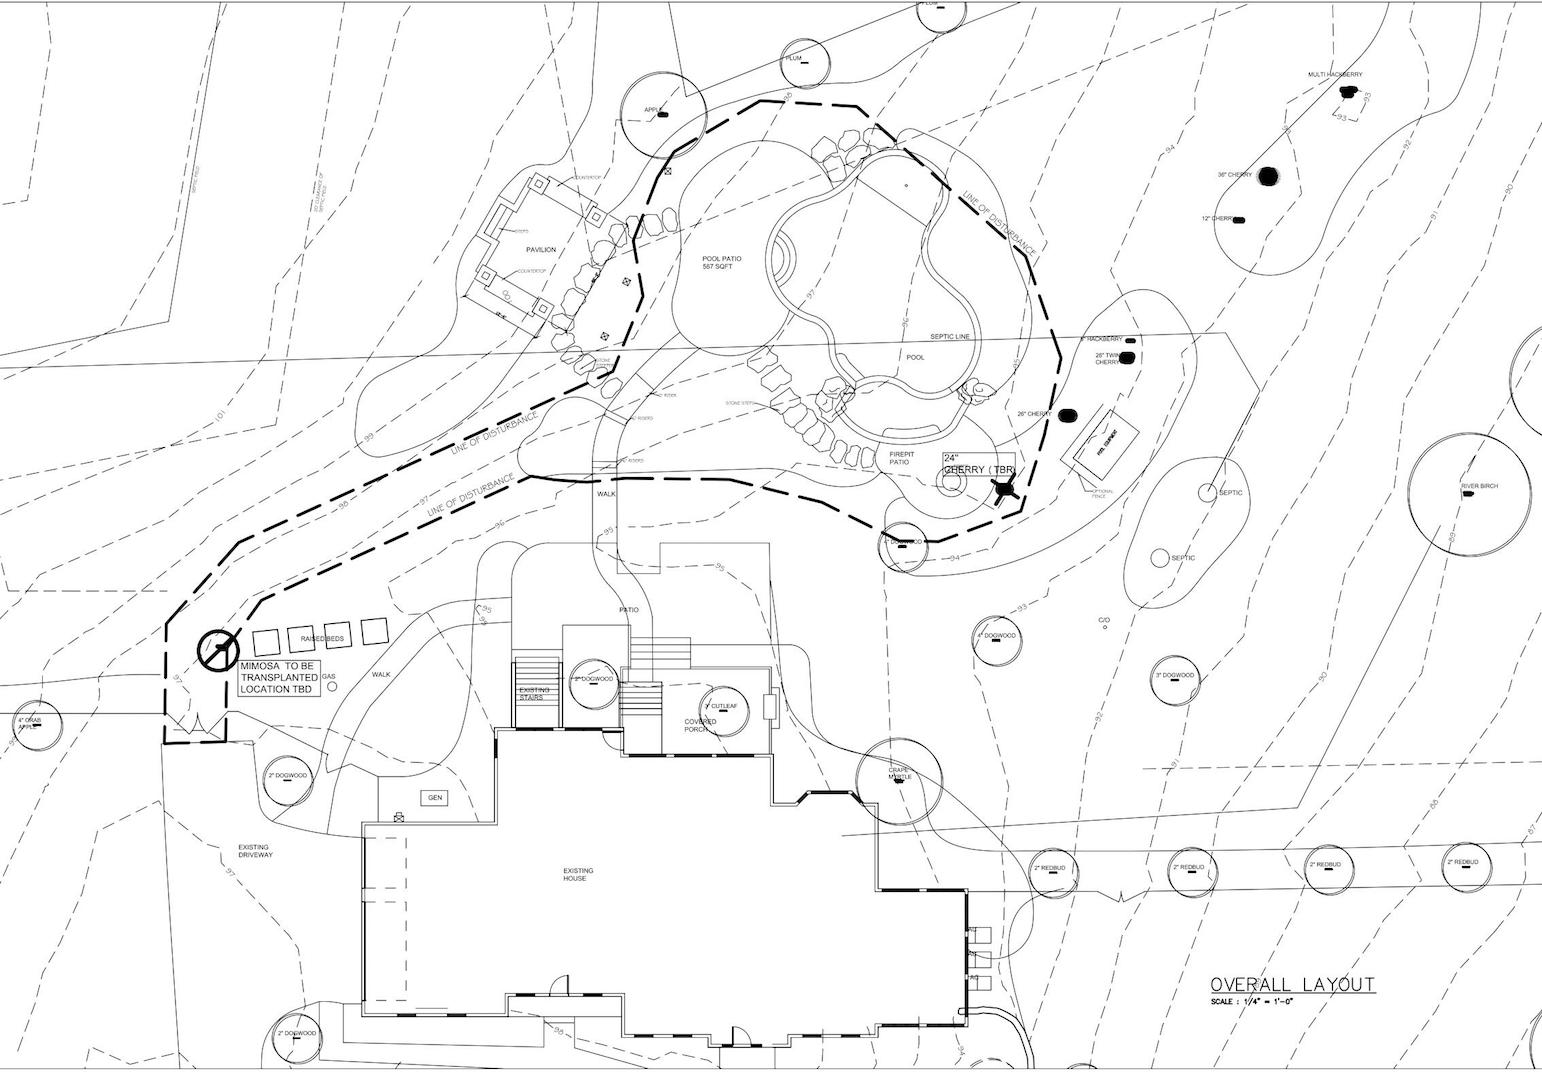 The architectural plan showing the future outdoor environment.